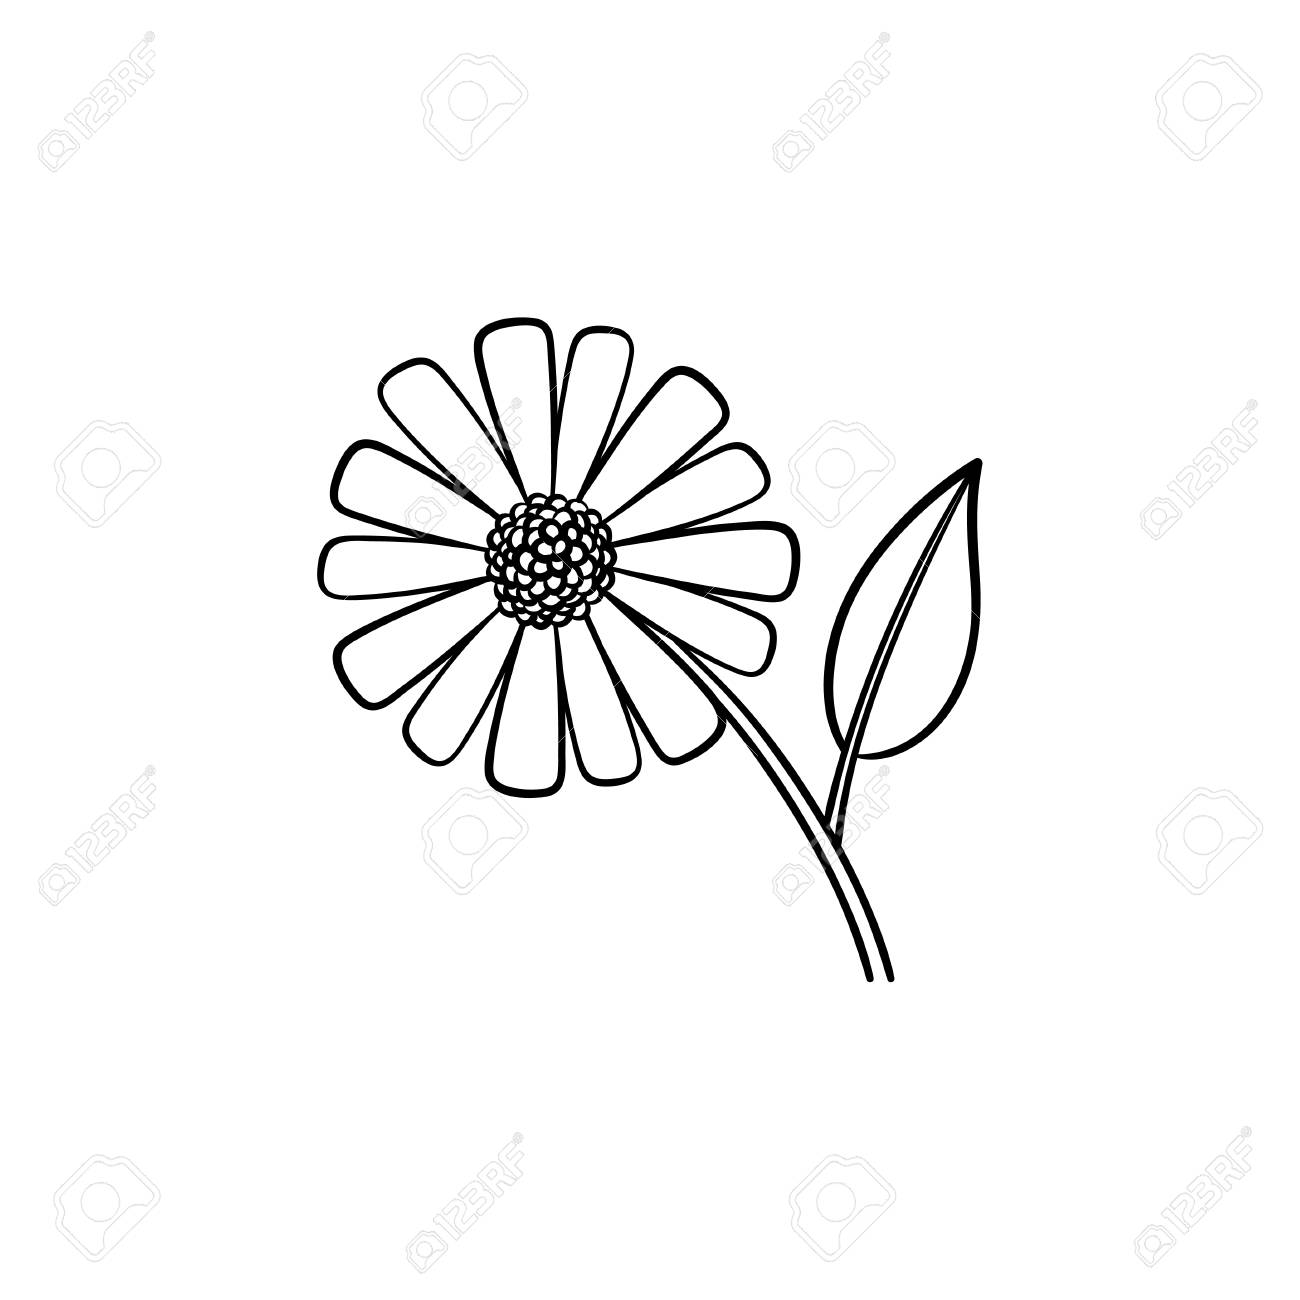 Daisy Flower Hand Drawn Outline Doodle Icon Field Daisy Flower